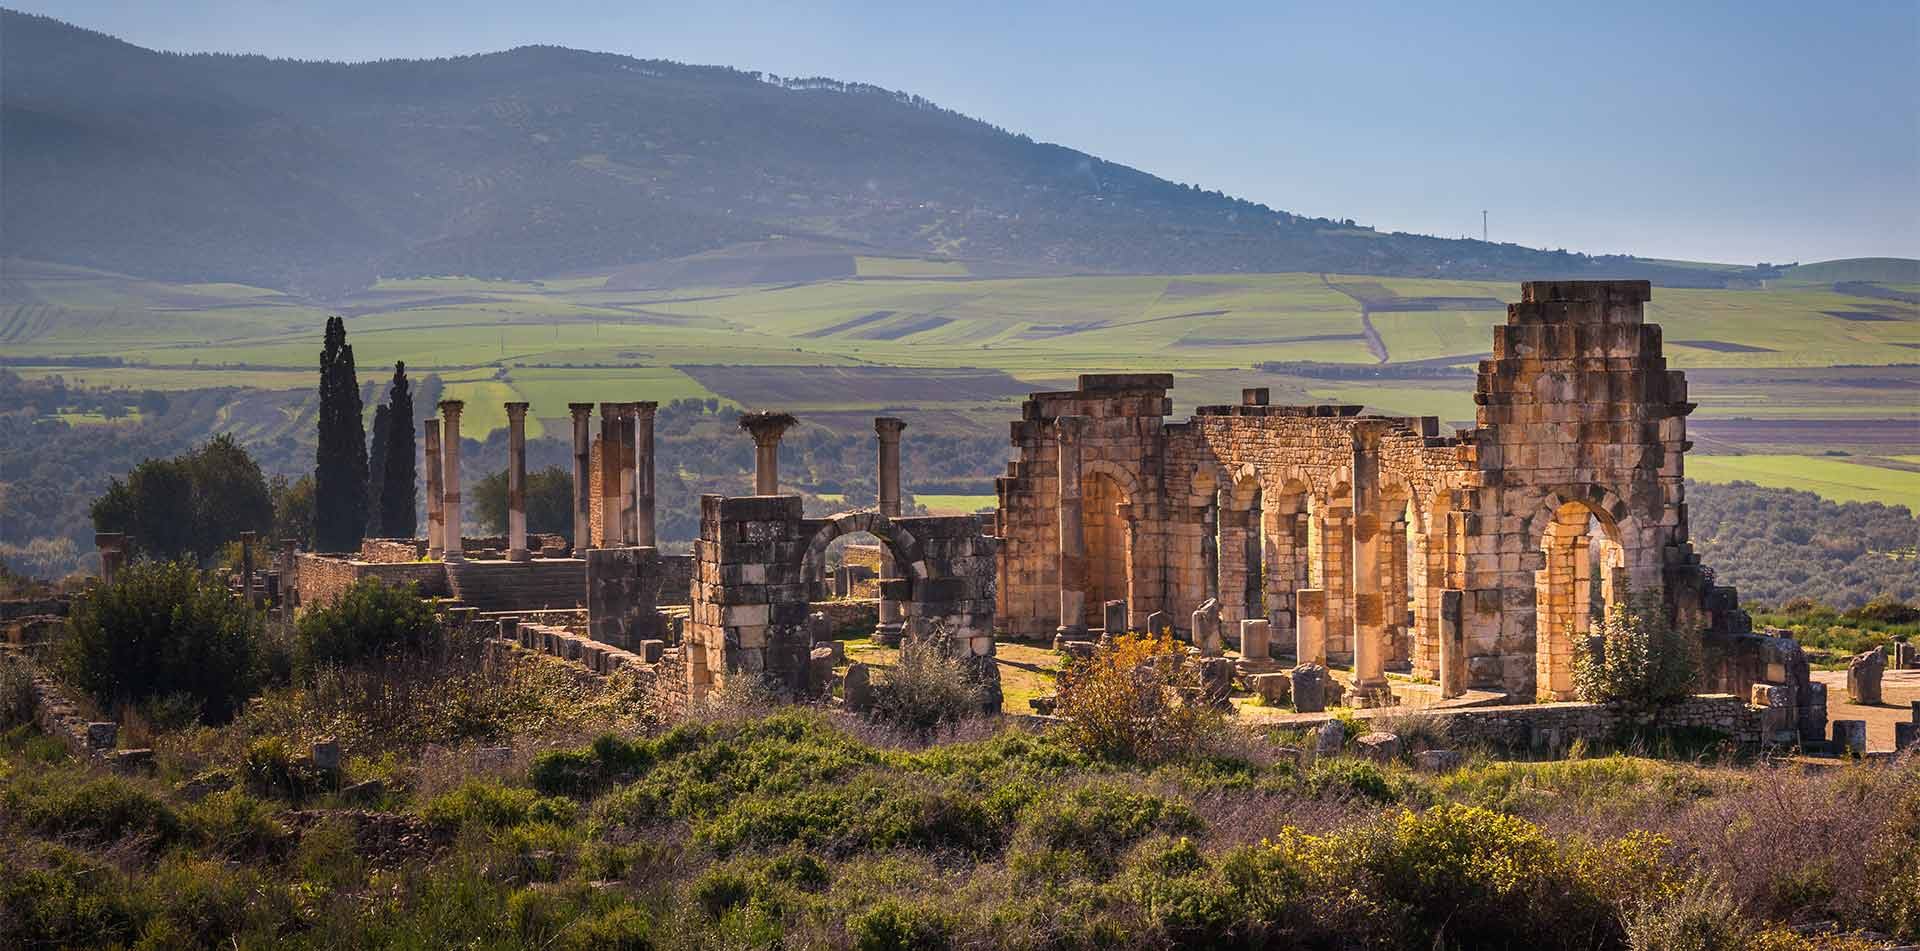 Roman ruins at Volubilis Morocco